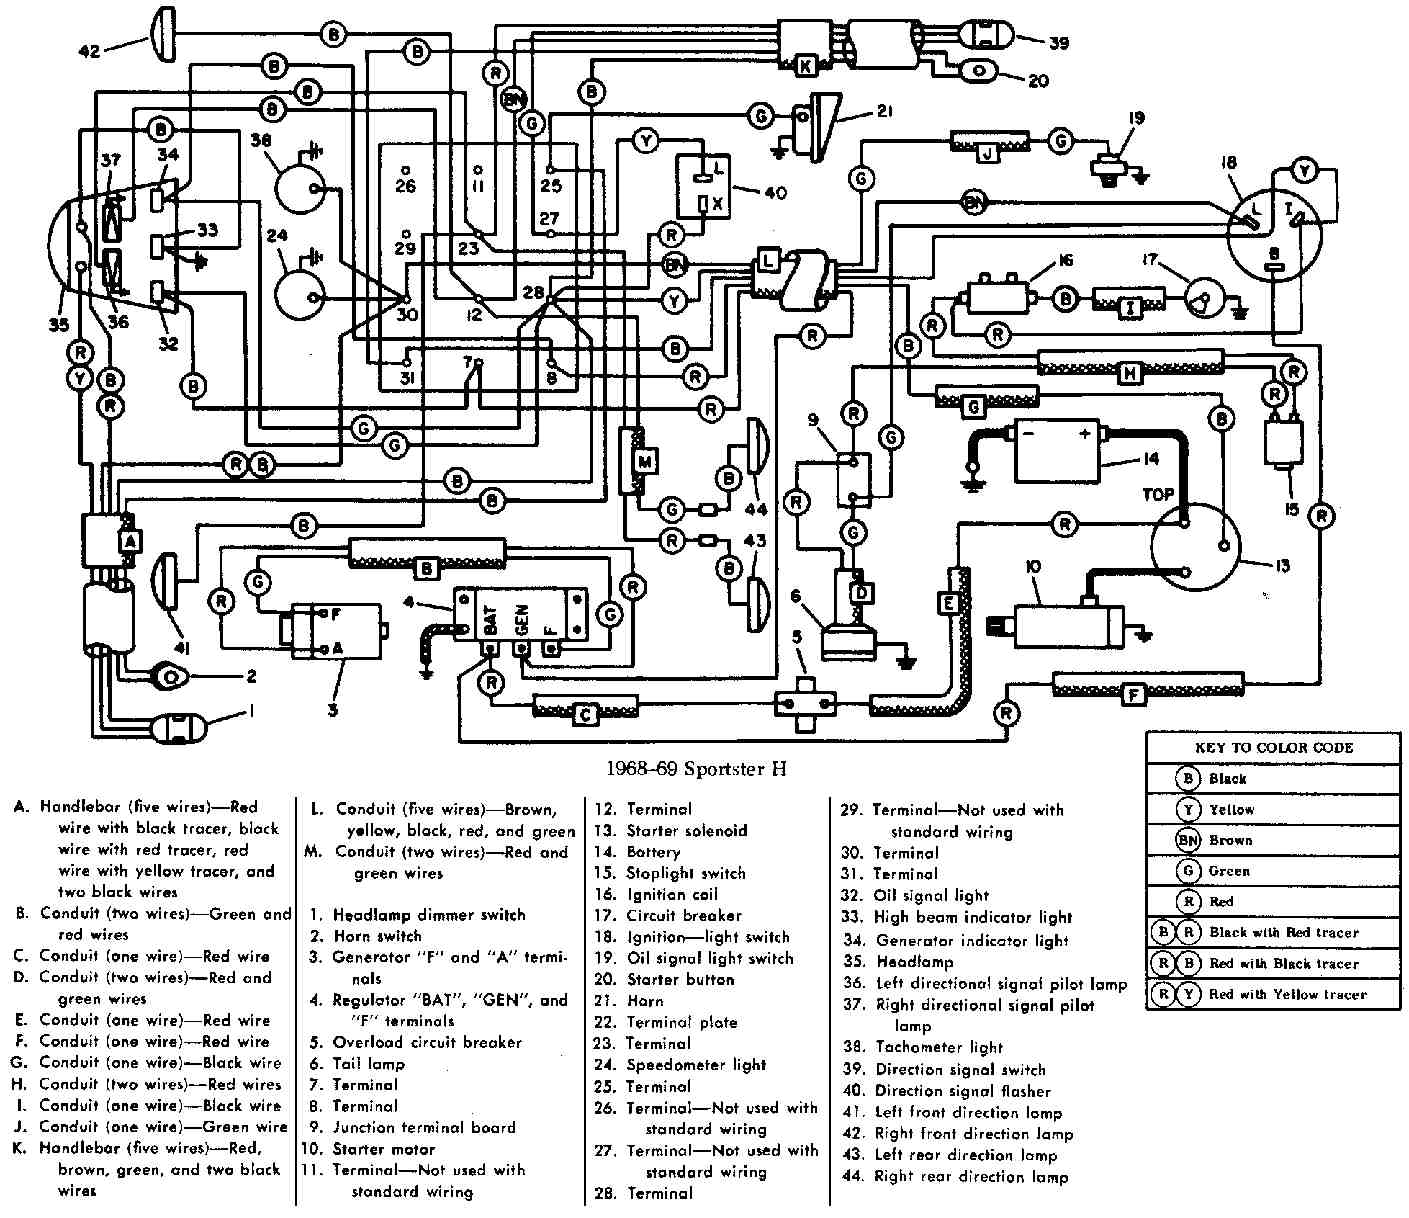 flh wiring diagram wiring diagram for you all u2022 rh onlinetuner co